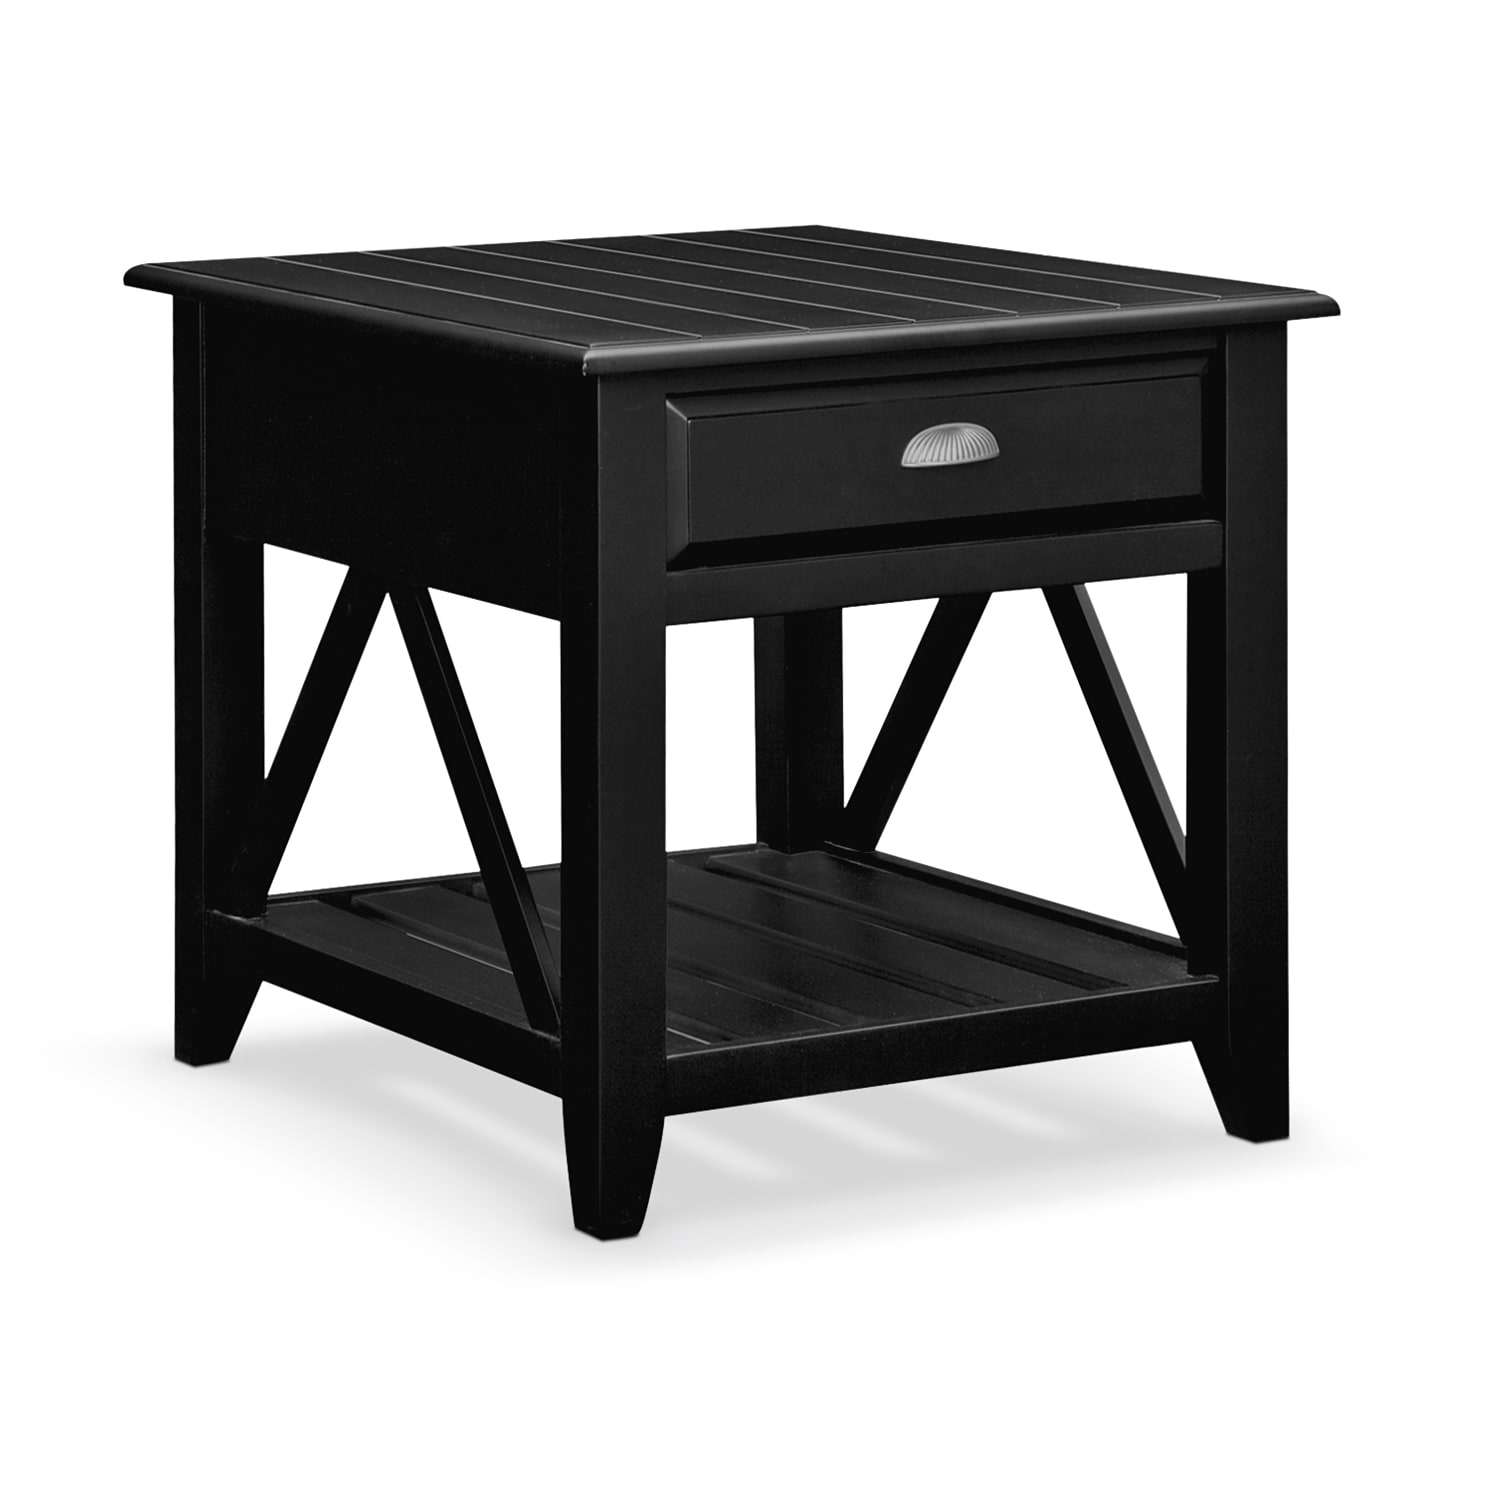 Furnishings for every room online and store furniture for Accent end tables